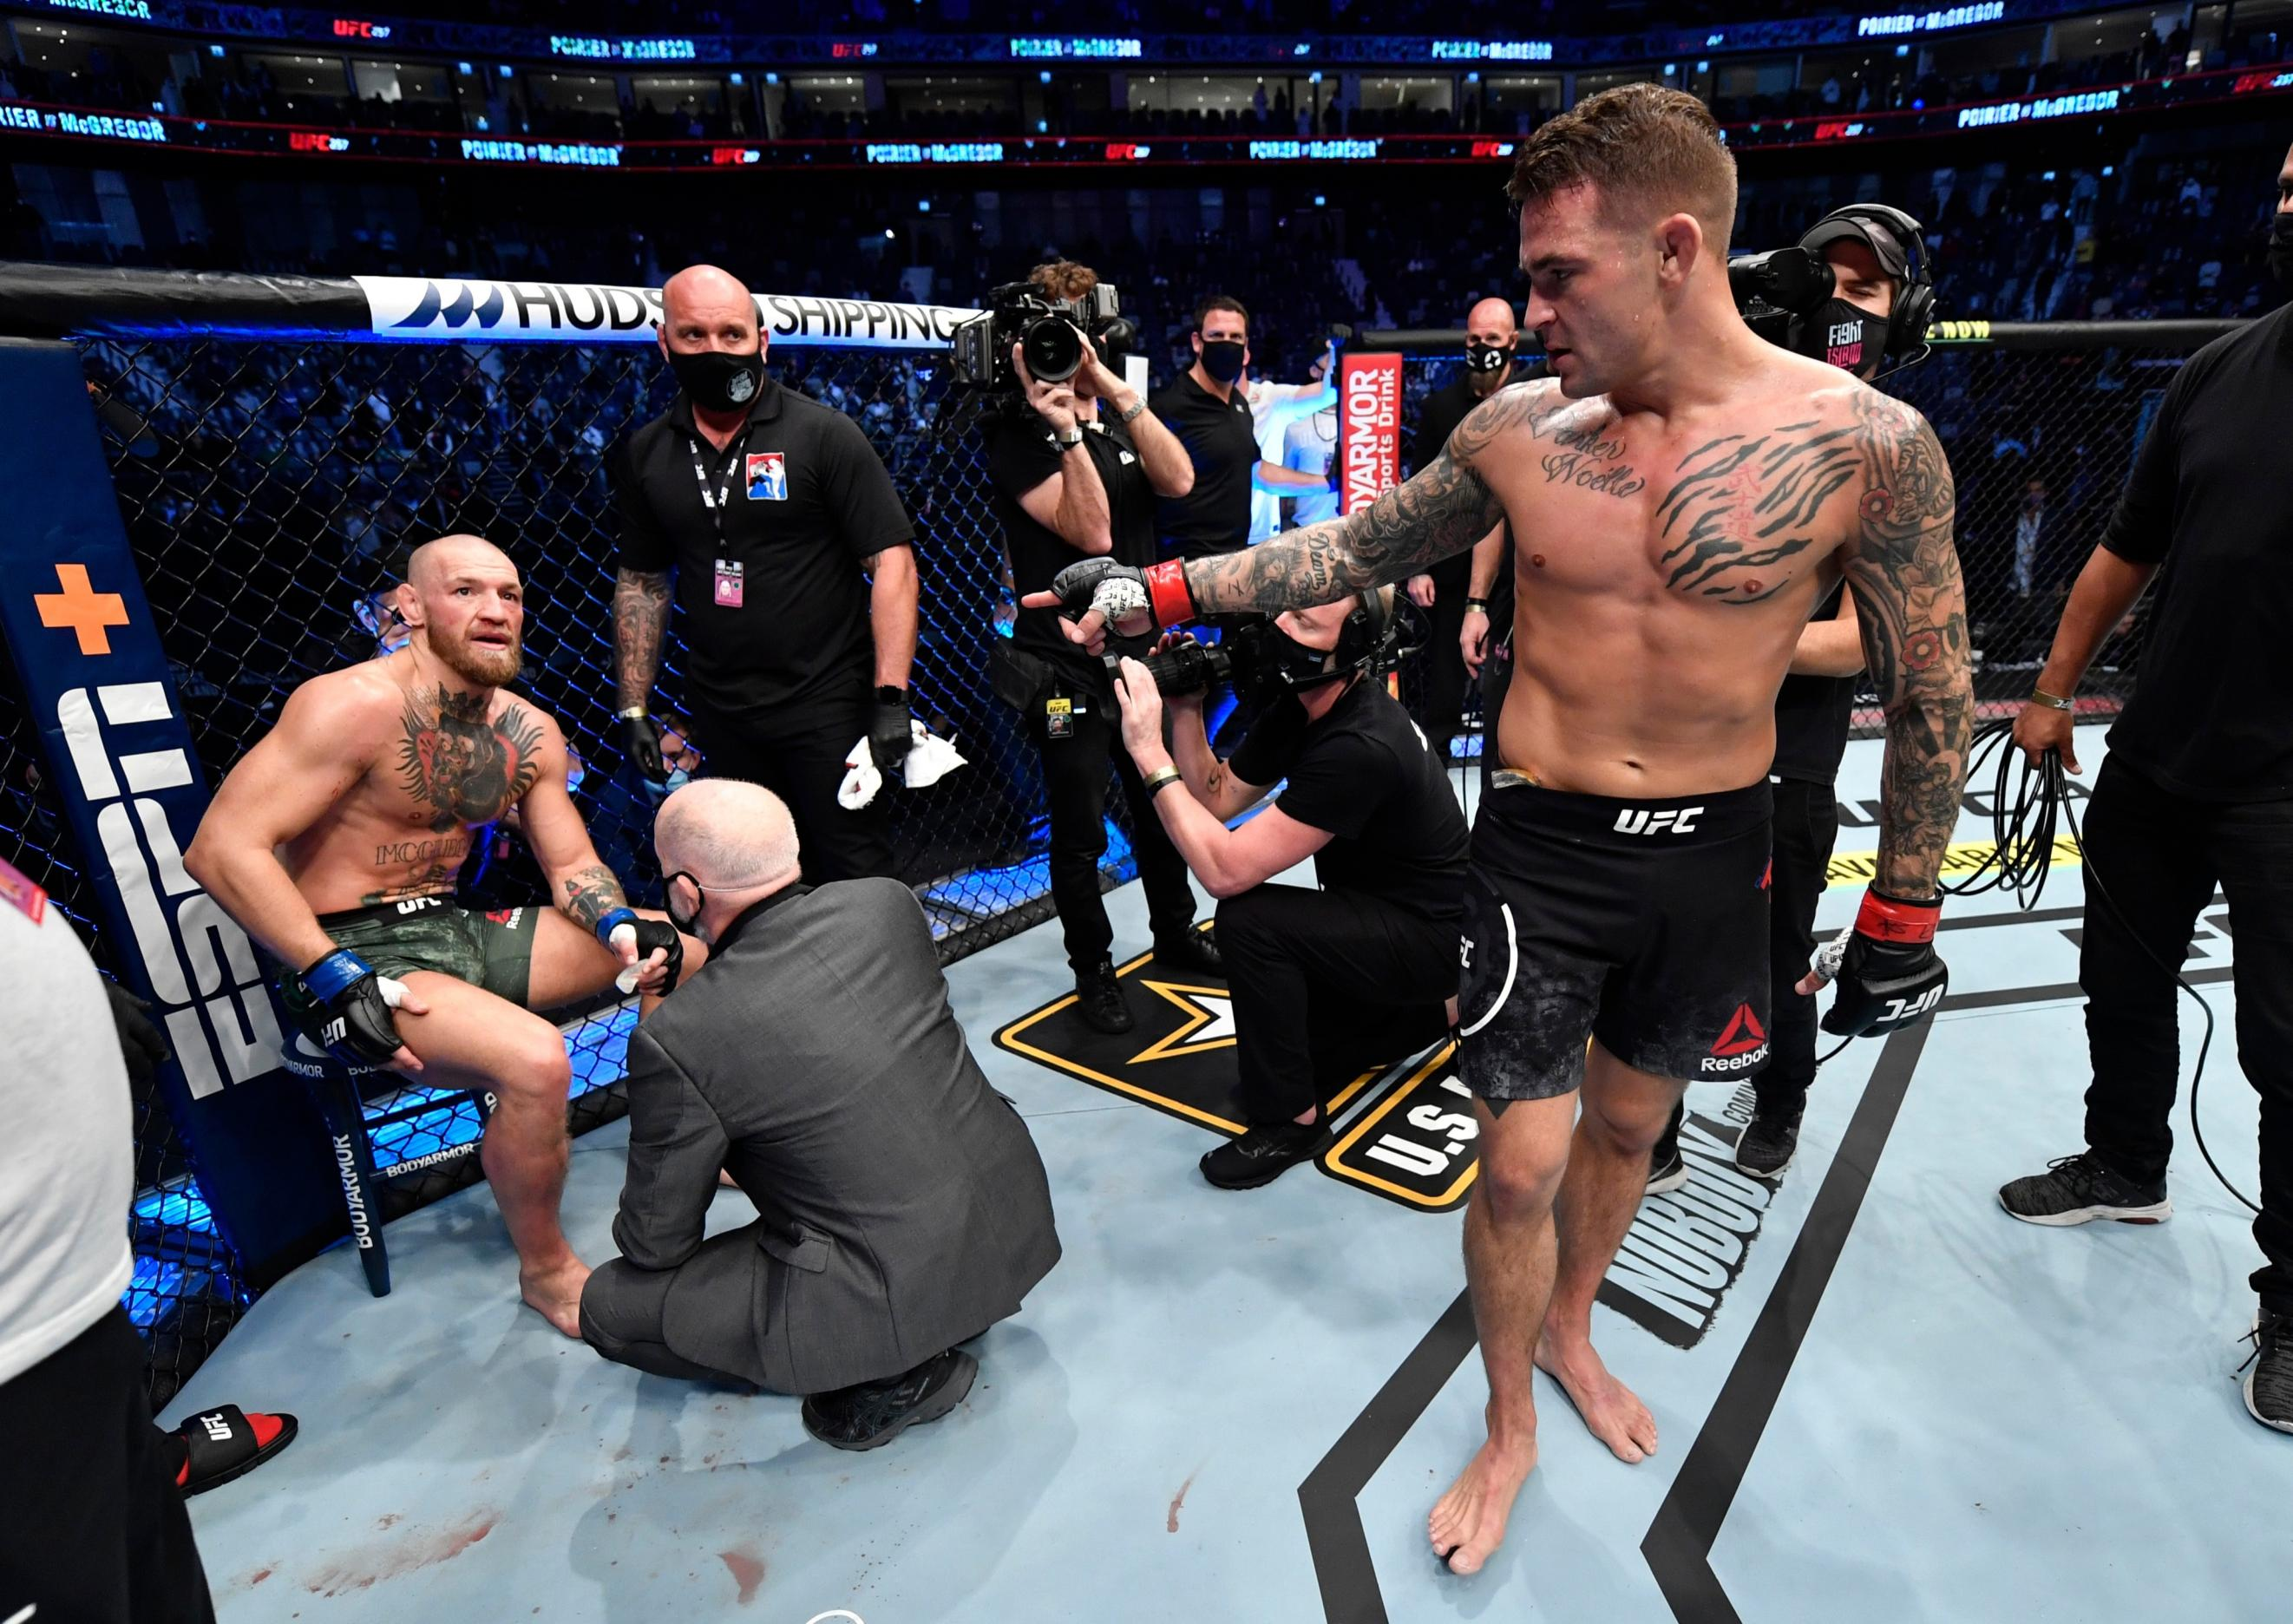 UFC news: Din Thomas shared his thoughts on why Dustin Poirier has earned the right to fight whoever he wants in his next UFC outing.